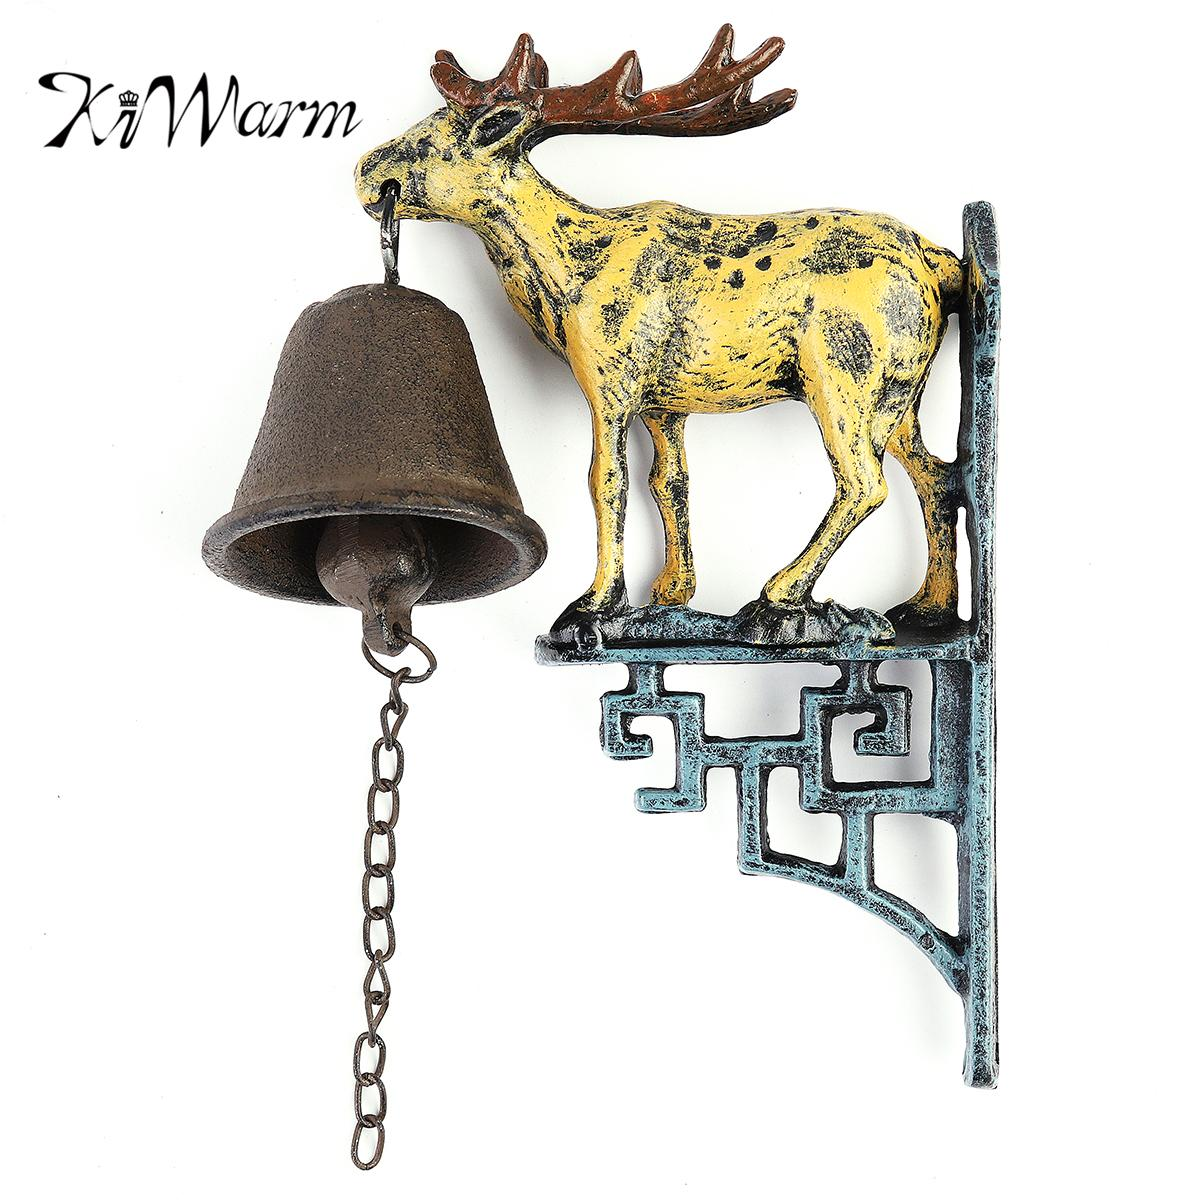 KiWarm Newest Cast Iron Door Bell Metal Wall Mounted Stag Head Deer Antler Reindeer Design for Home Garden Hanging Ornament